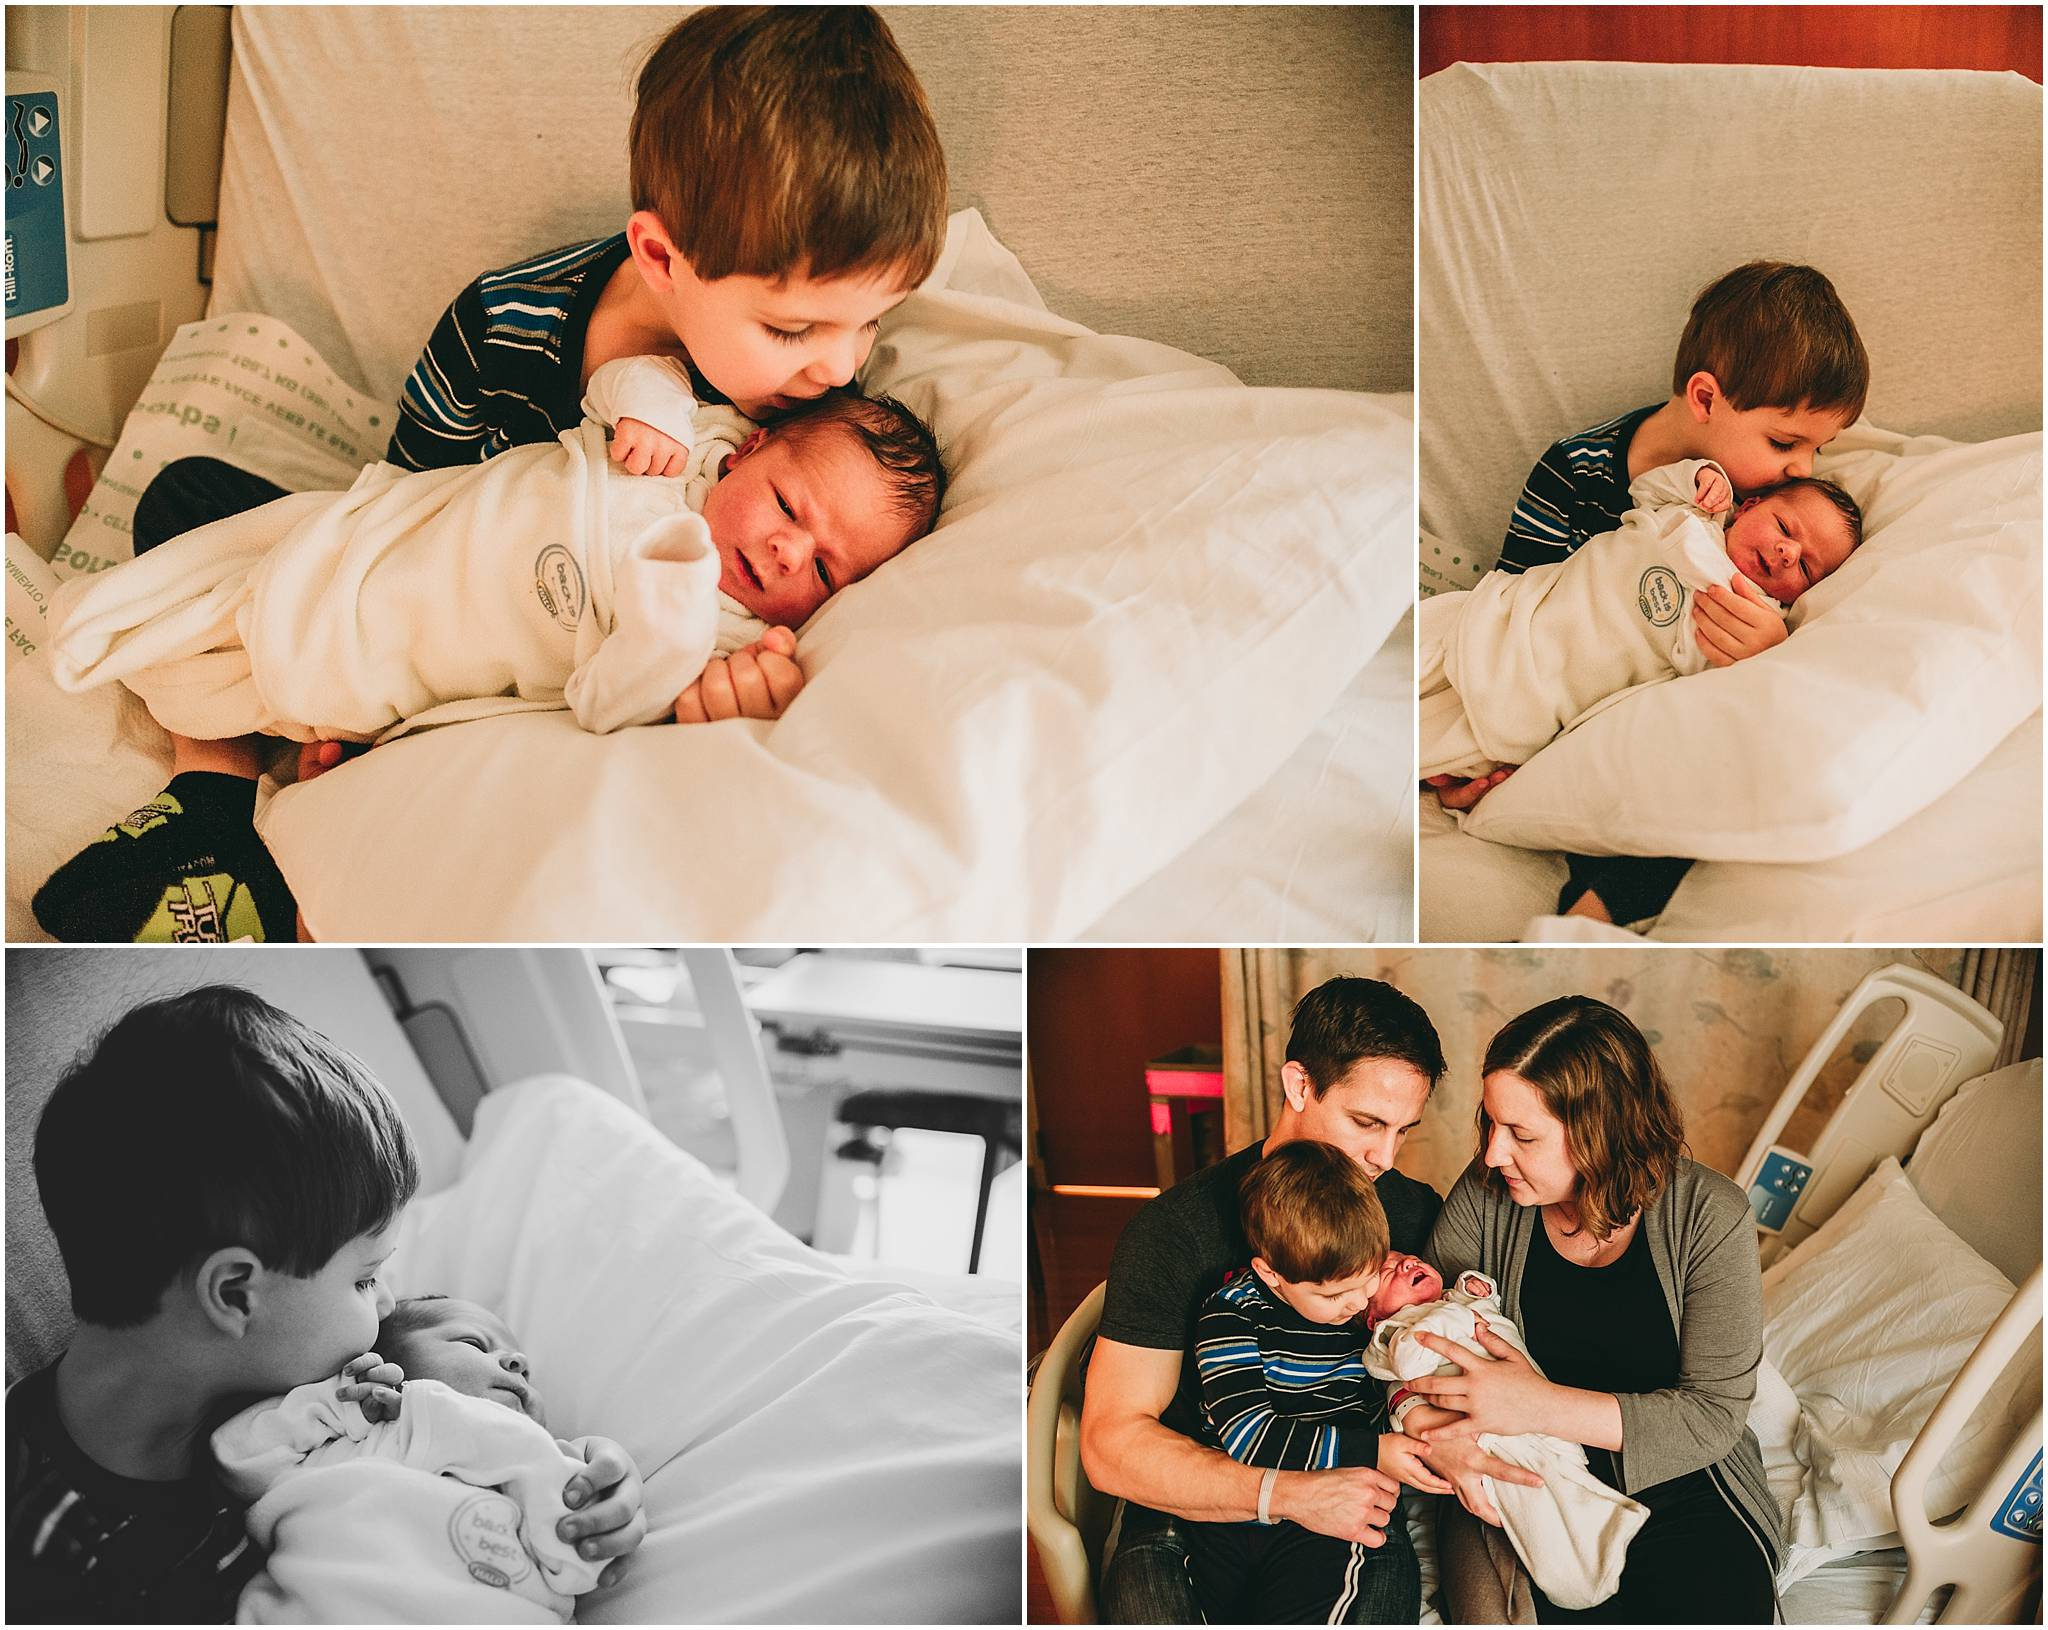 Family holding new baby boy in Cleveland hospital during newborn photo session